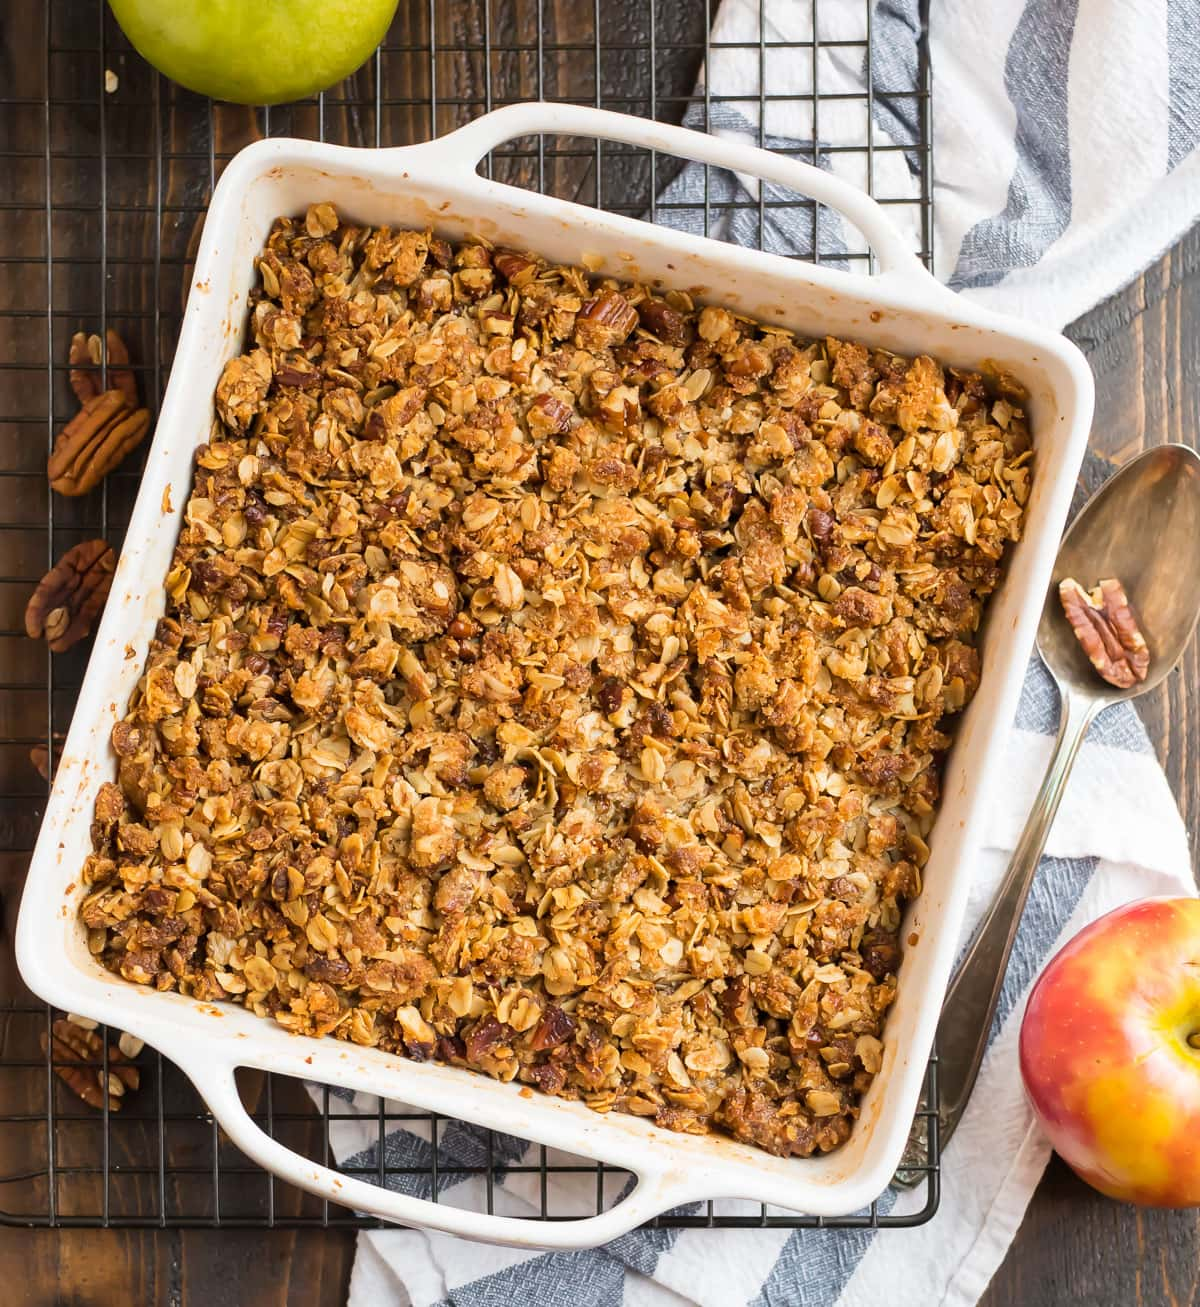 Gluten free apple crisp in a baking dish